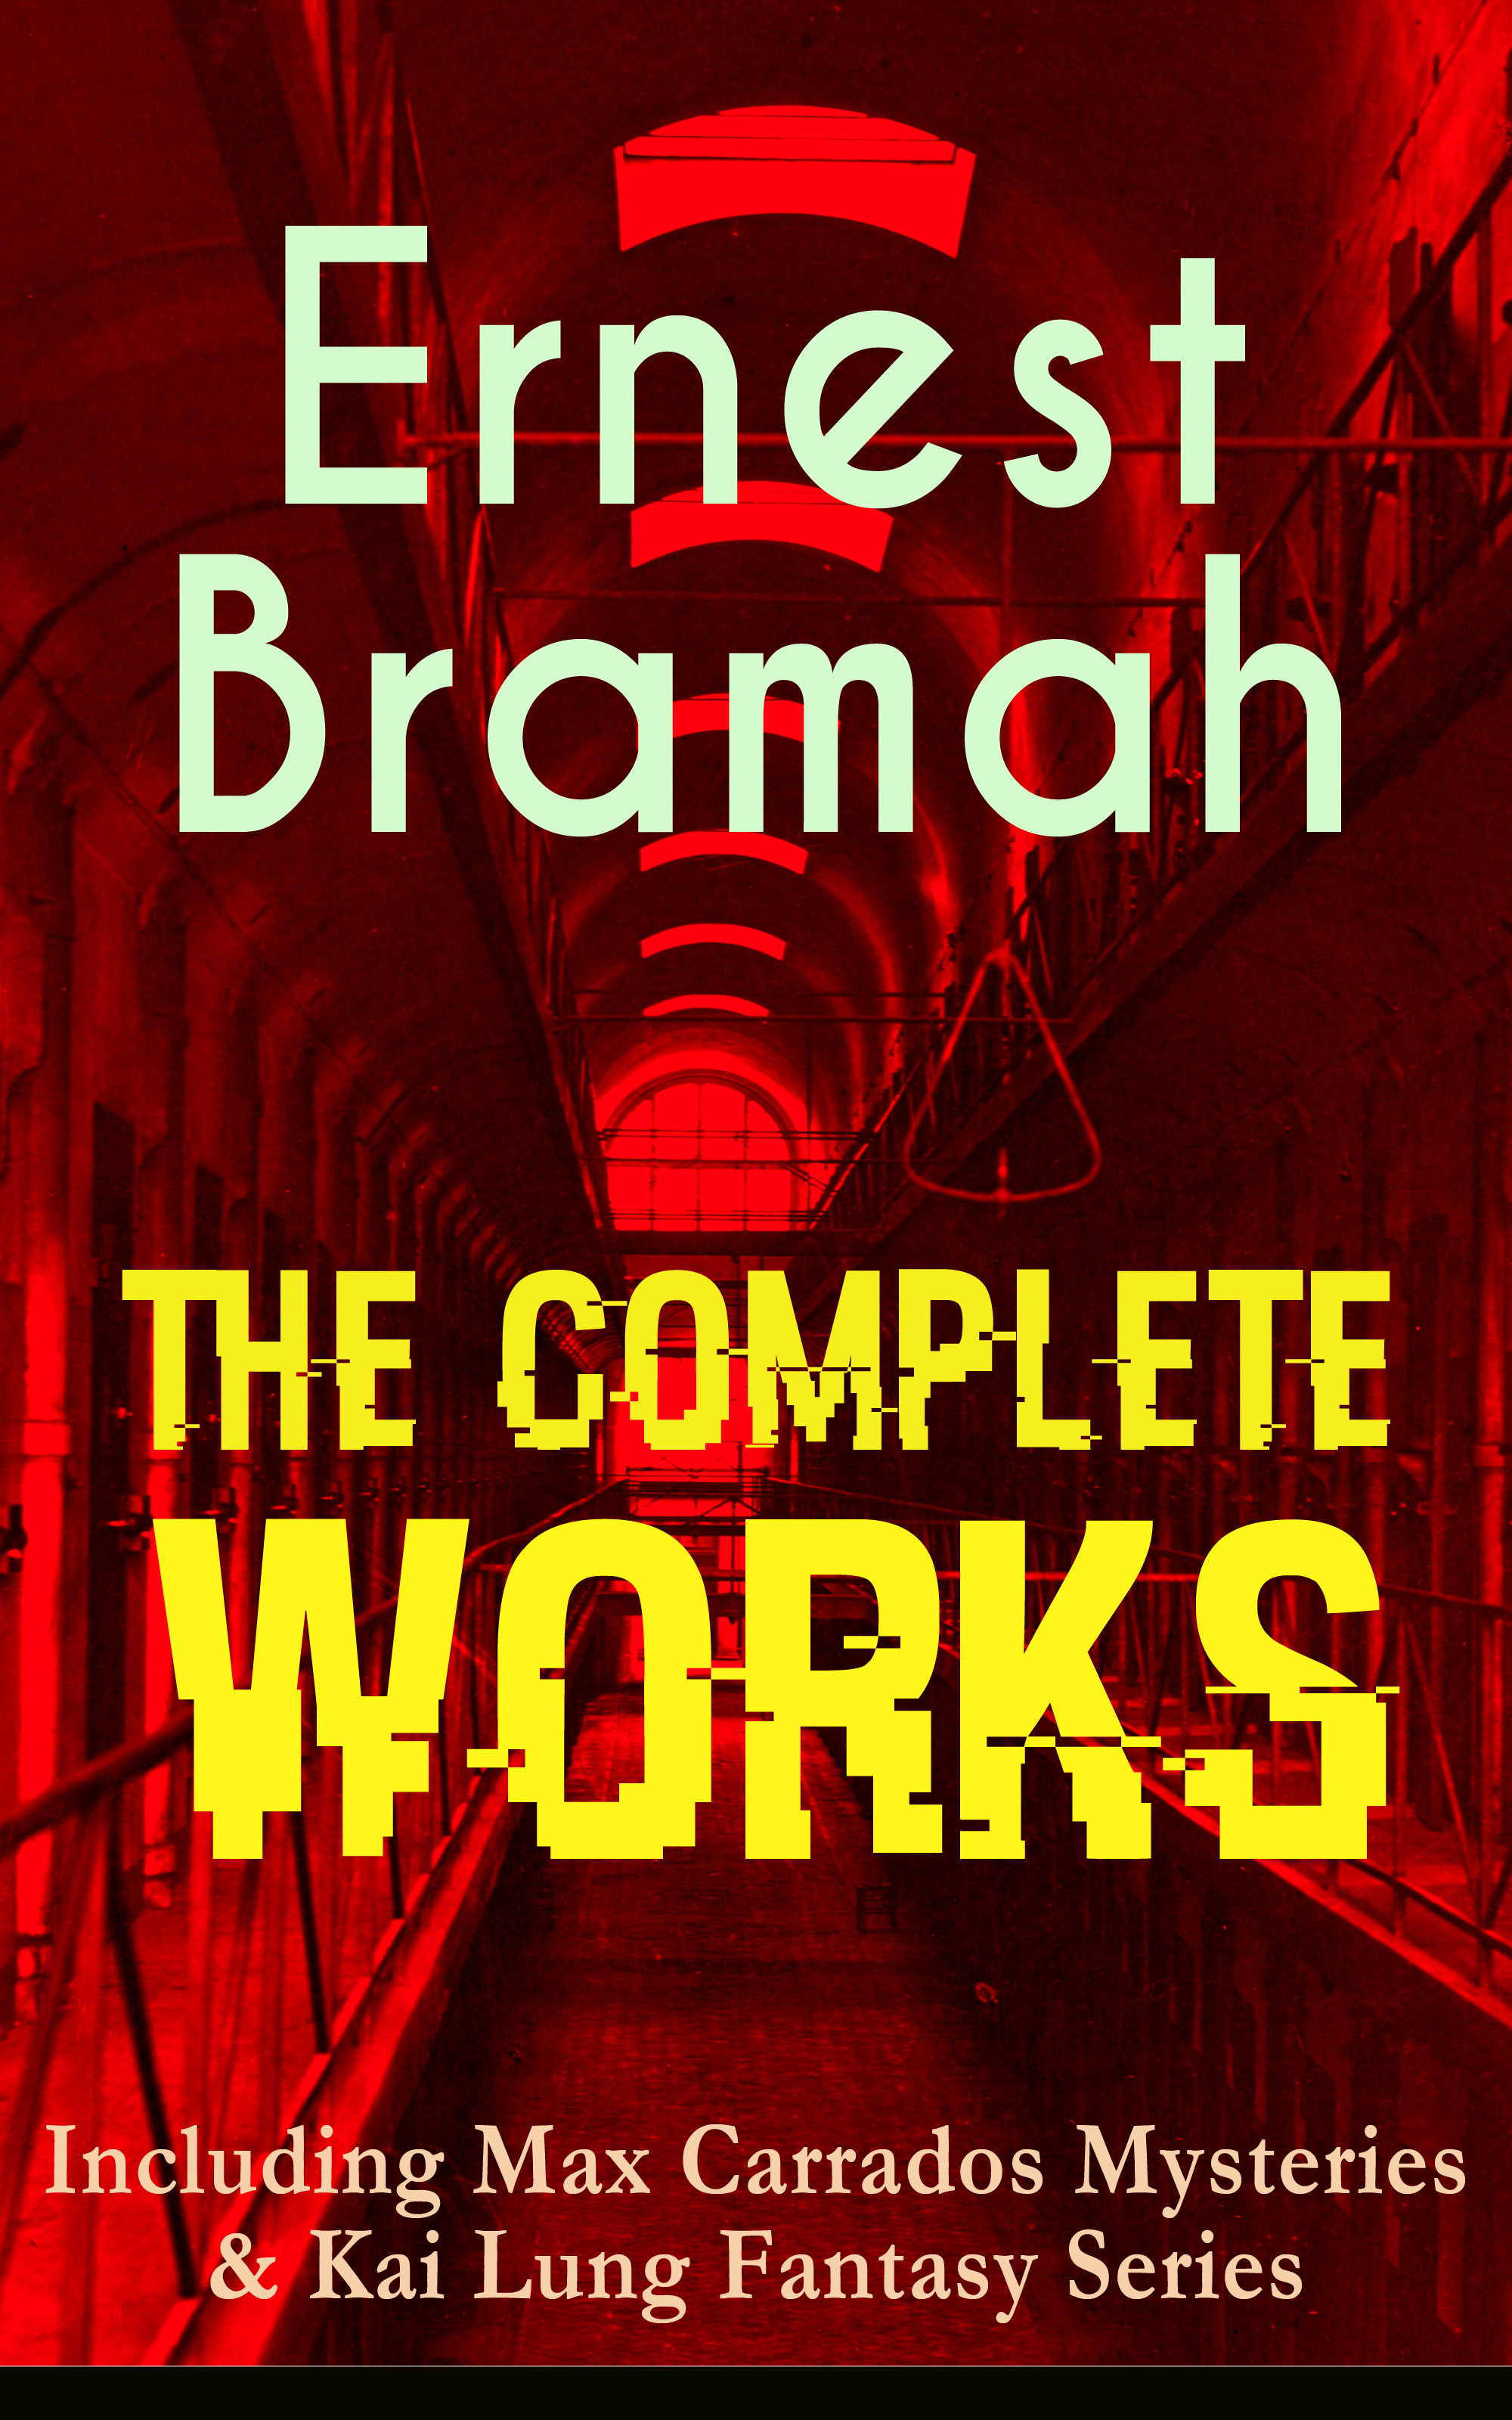 Bramah Ernest The Complete Works of Ernest Bramah (Including Max Carrados Mysteries & Kai Lung Fantasy Series) bramah ernest the eyes of max carrados